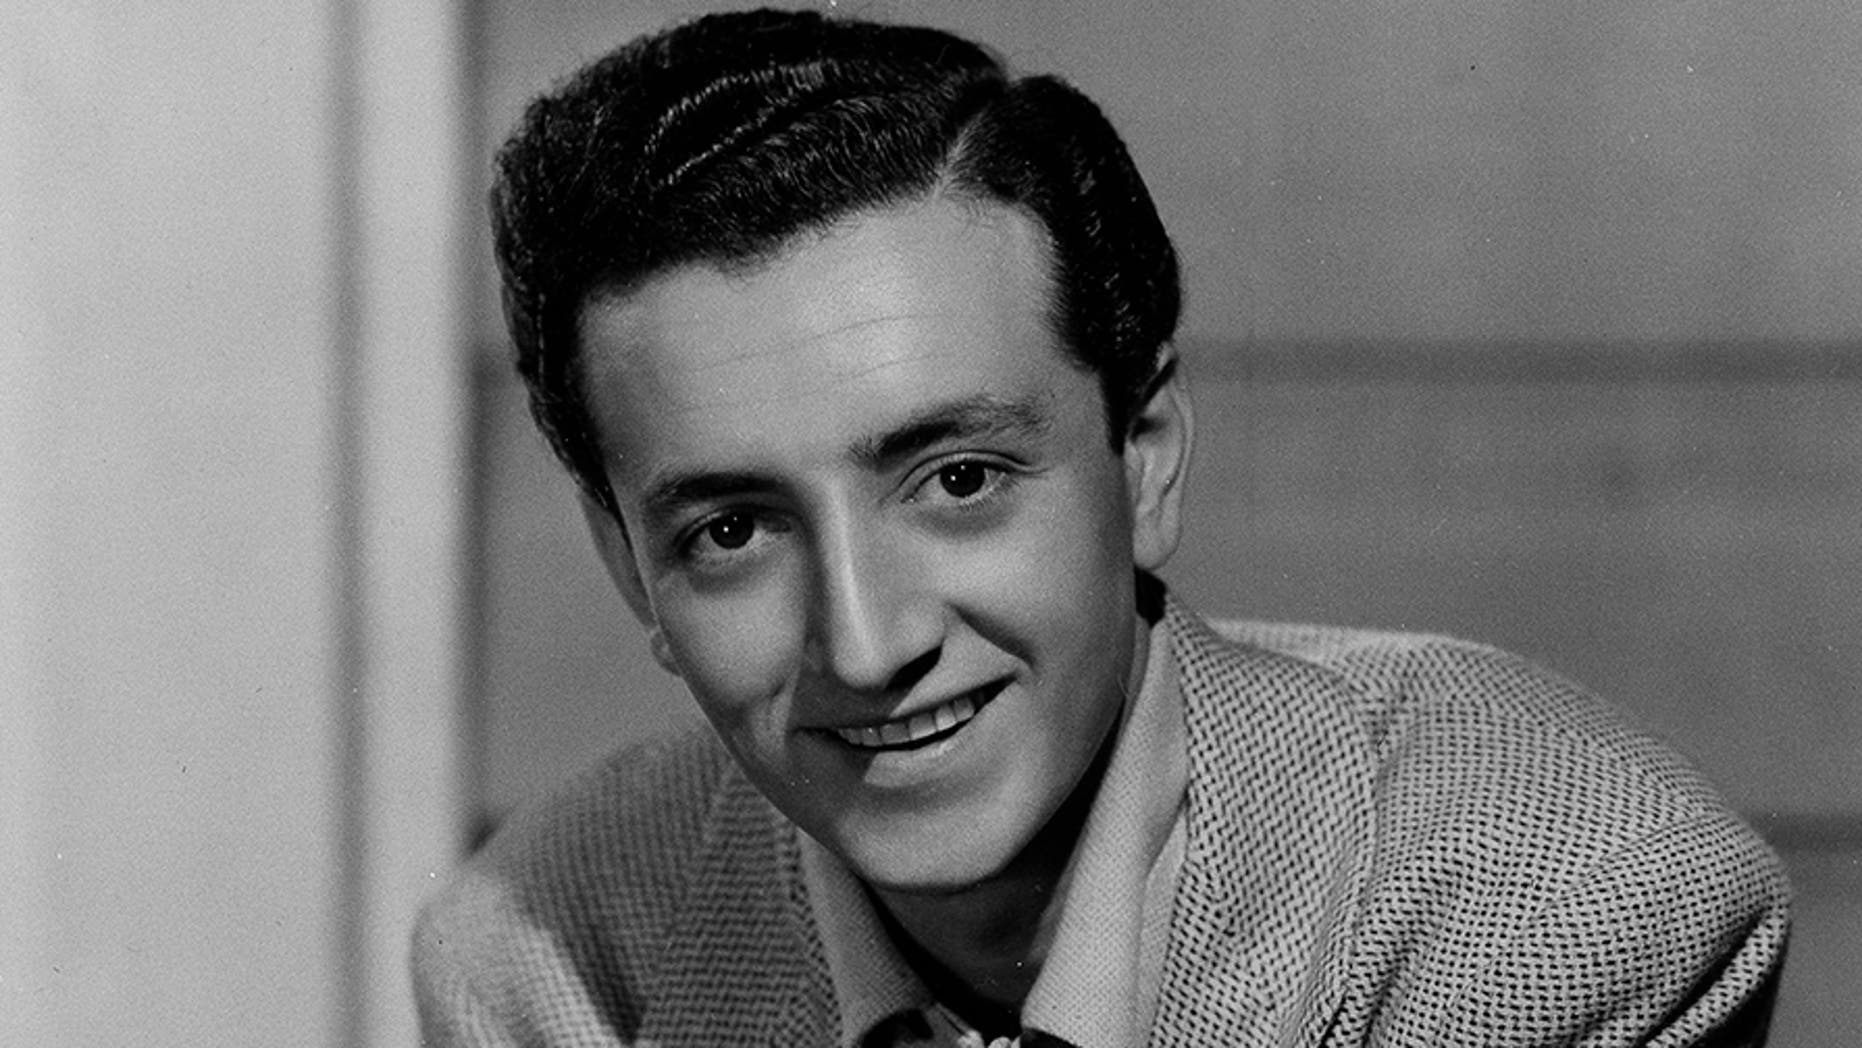 """Best known for hits """"You're Breaking My Heart"""" and """"On the Street Where You Live,"""" Damone made over 2,500 recordings."""